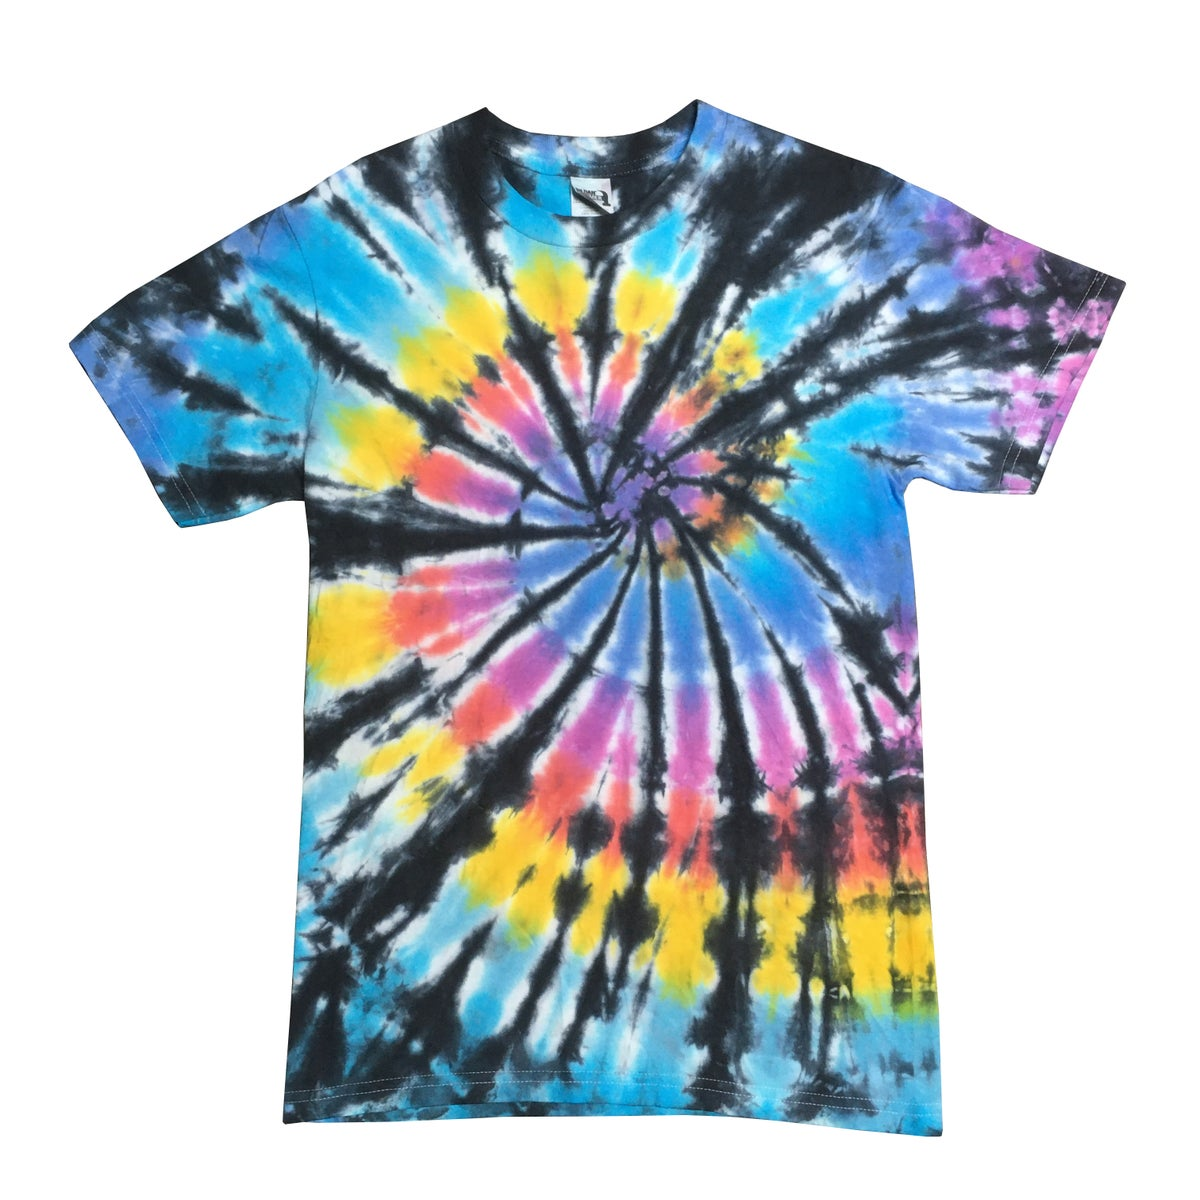 TIE DYE SPIRAL - SMALL